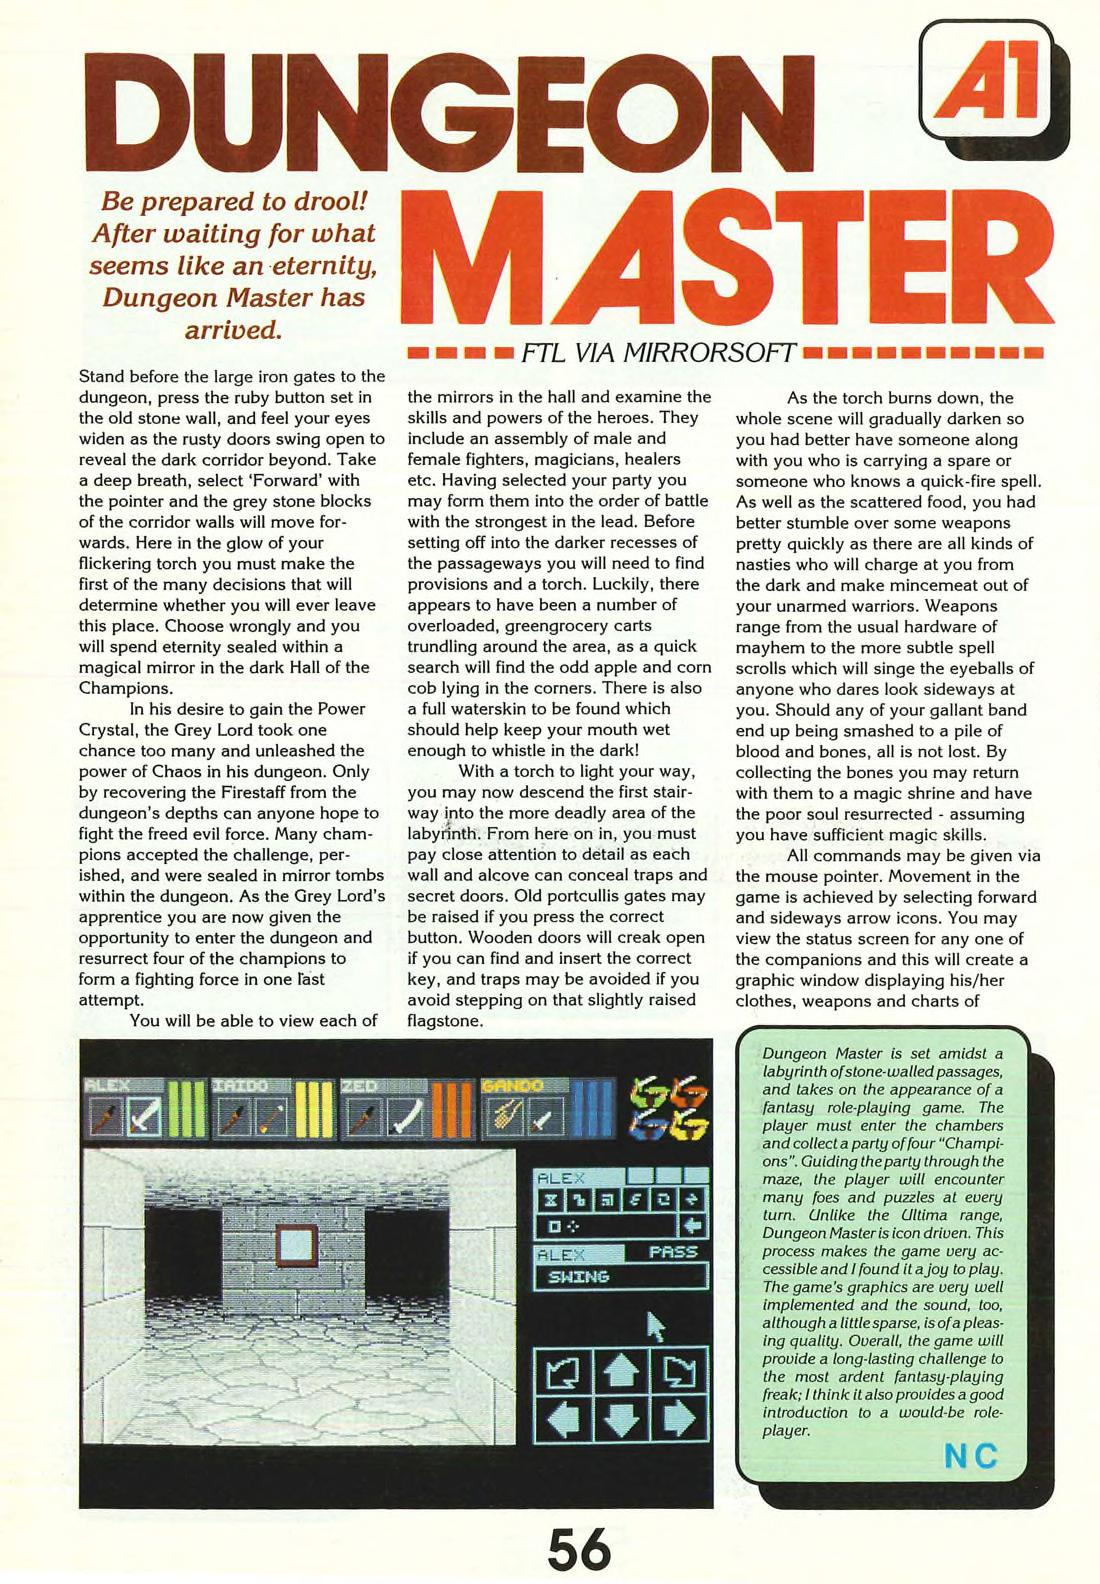 Dungeon Master for Atari ST Review published in British magazine 'ST Action', Issue #1 May 1988, Page 56